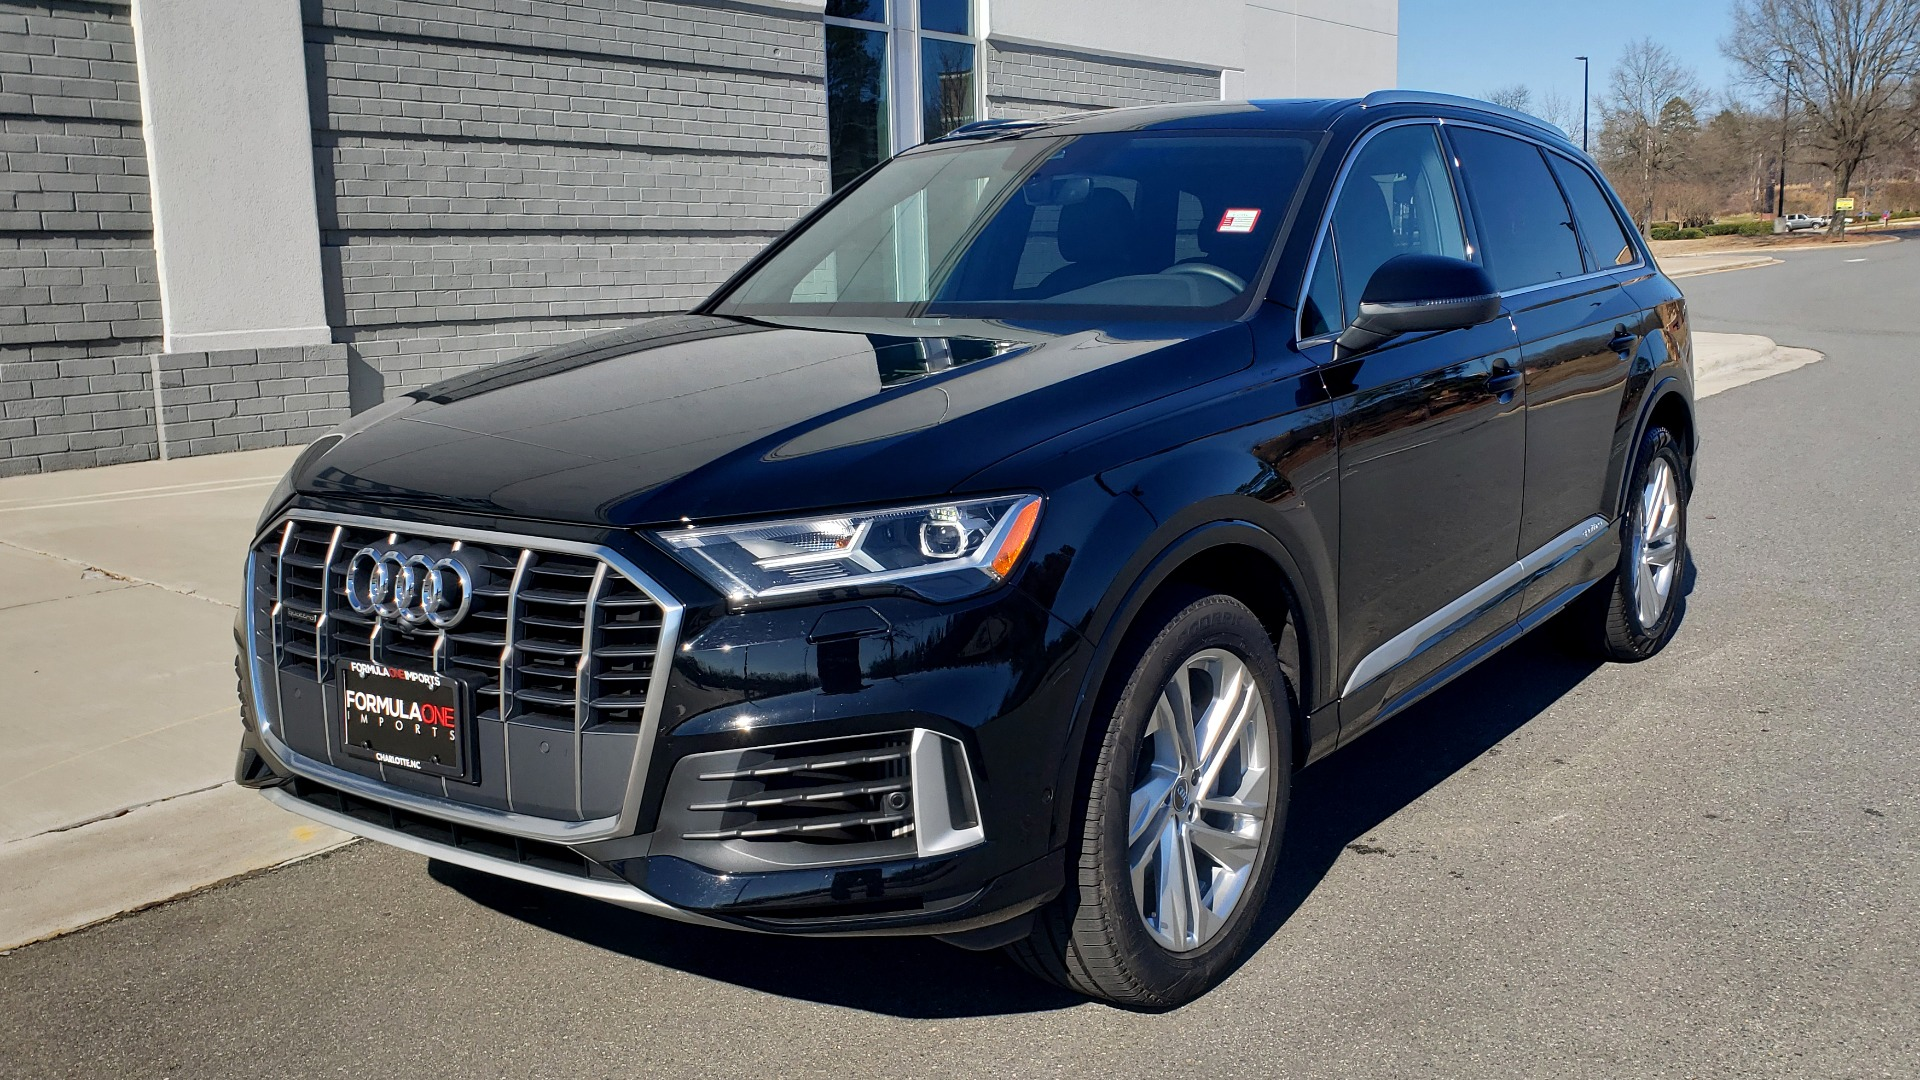 Used 2020 Audi Q7 PREMIUM PLUS / NAV / SUNROOF / 3-ROW / REARVIEW for sale $50,695 at Formula Imports in Charlotte NC 28227 2